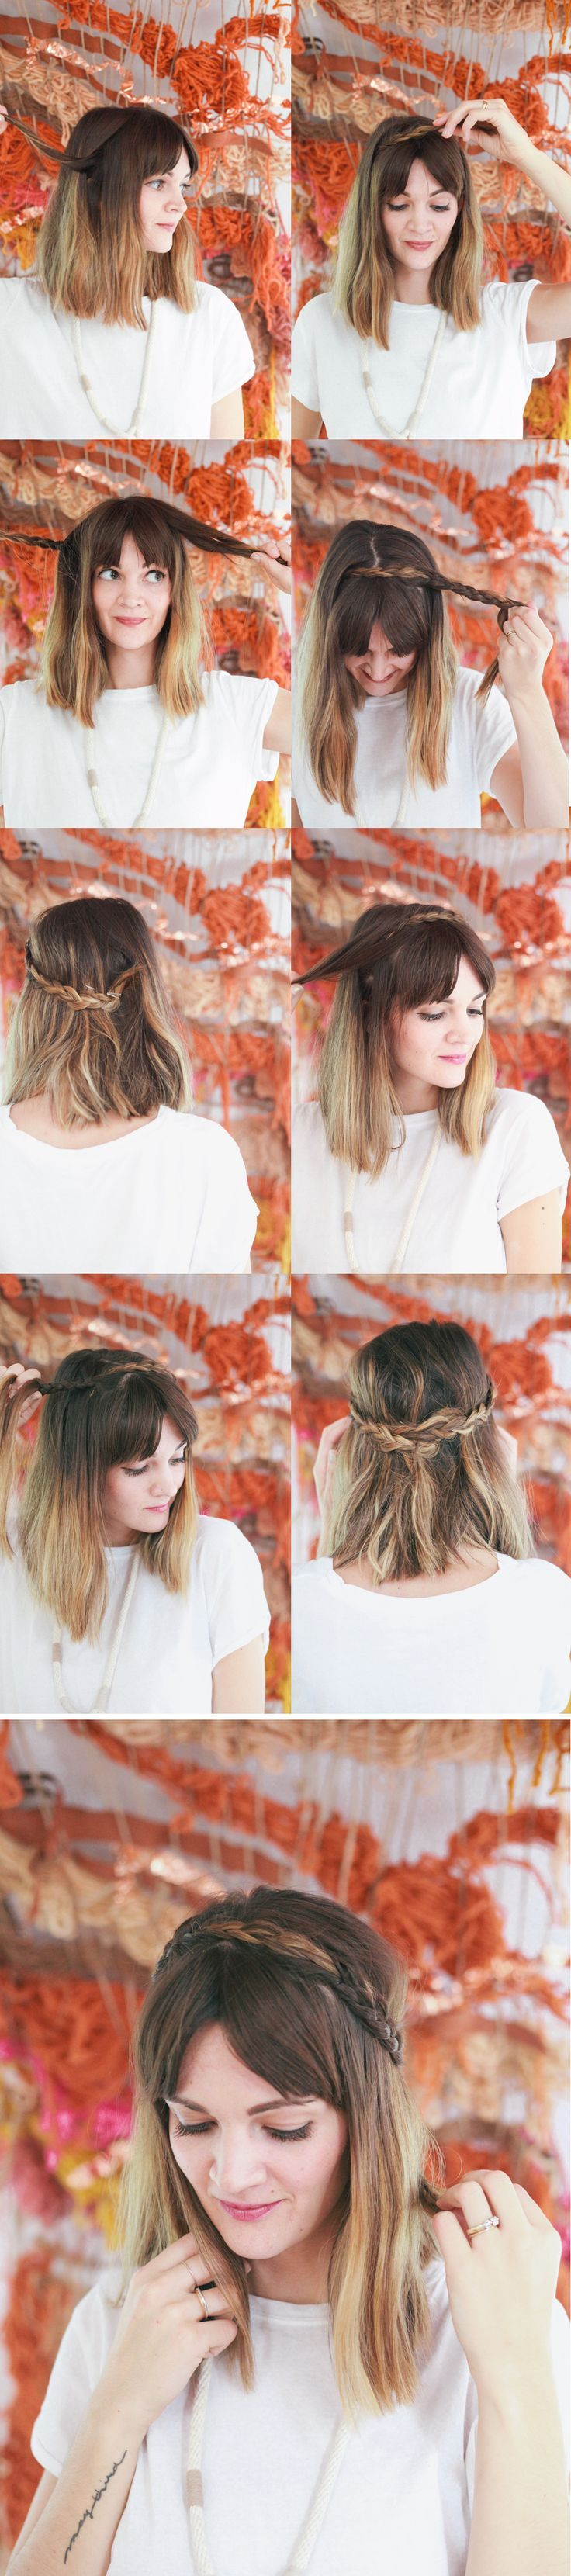 Pretty Braided Crown Hairstyle Tutorials and Ideas / http://www.himisspuff.com/easy-diy-braided-hairstyles-tutorials/29/